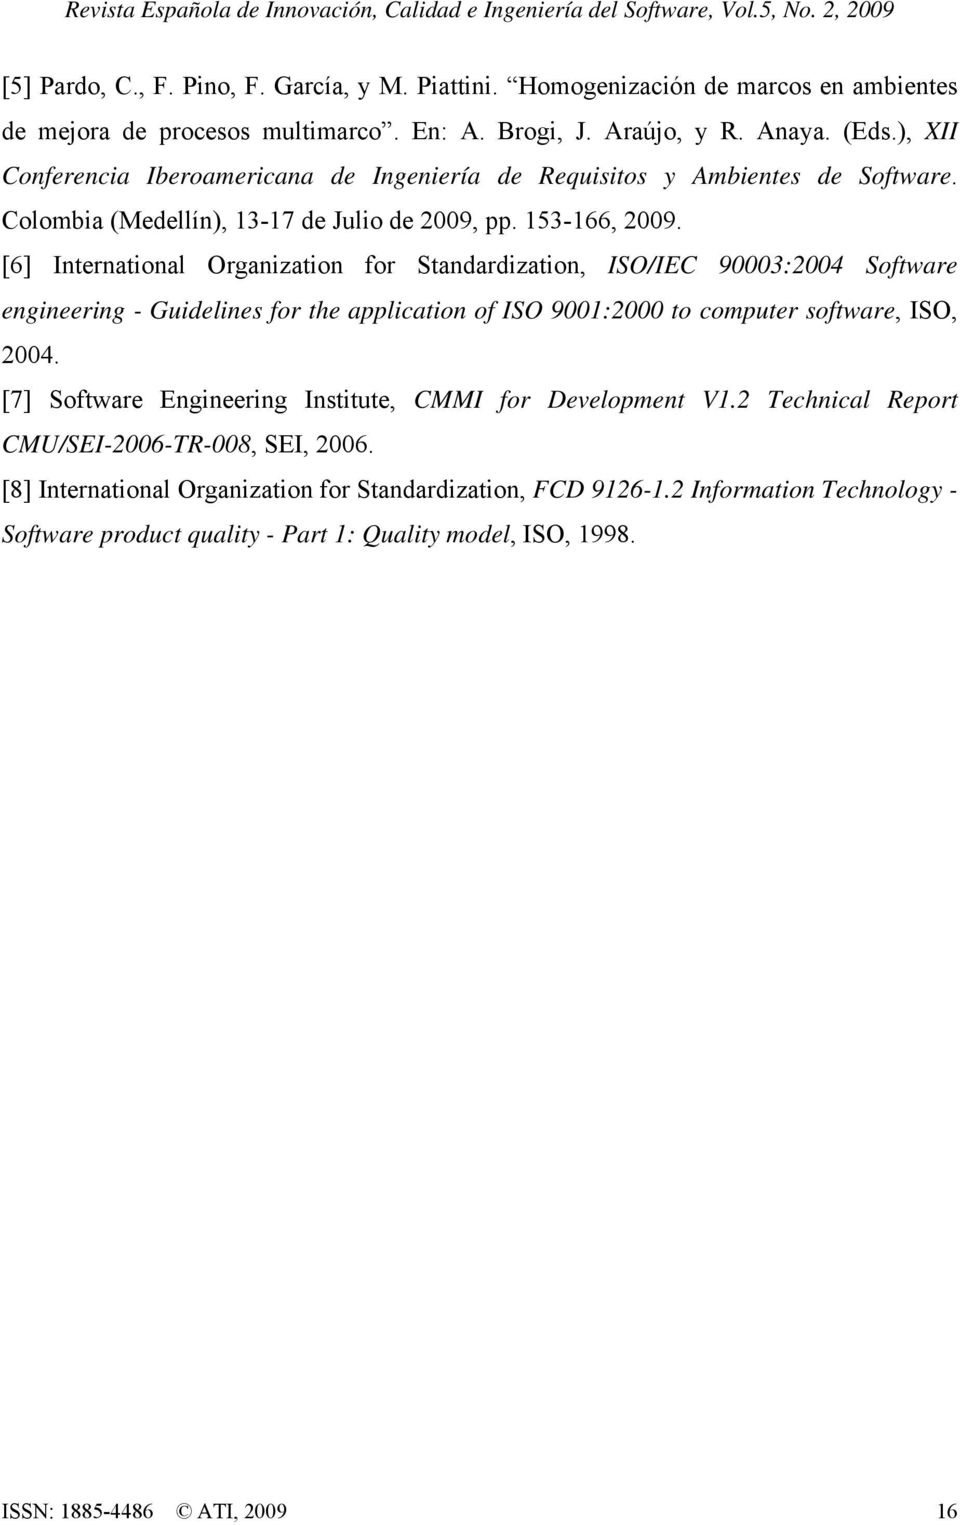 [6] International Organization for Standardization, ISO/IEC 90003:2004 Software engineering - Guidelines for the application of ISO 9001:2000 to computer software, ISO, 2004.